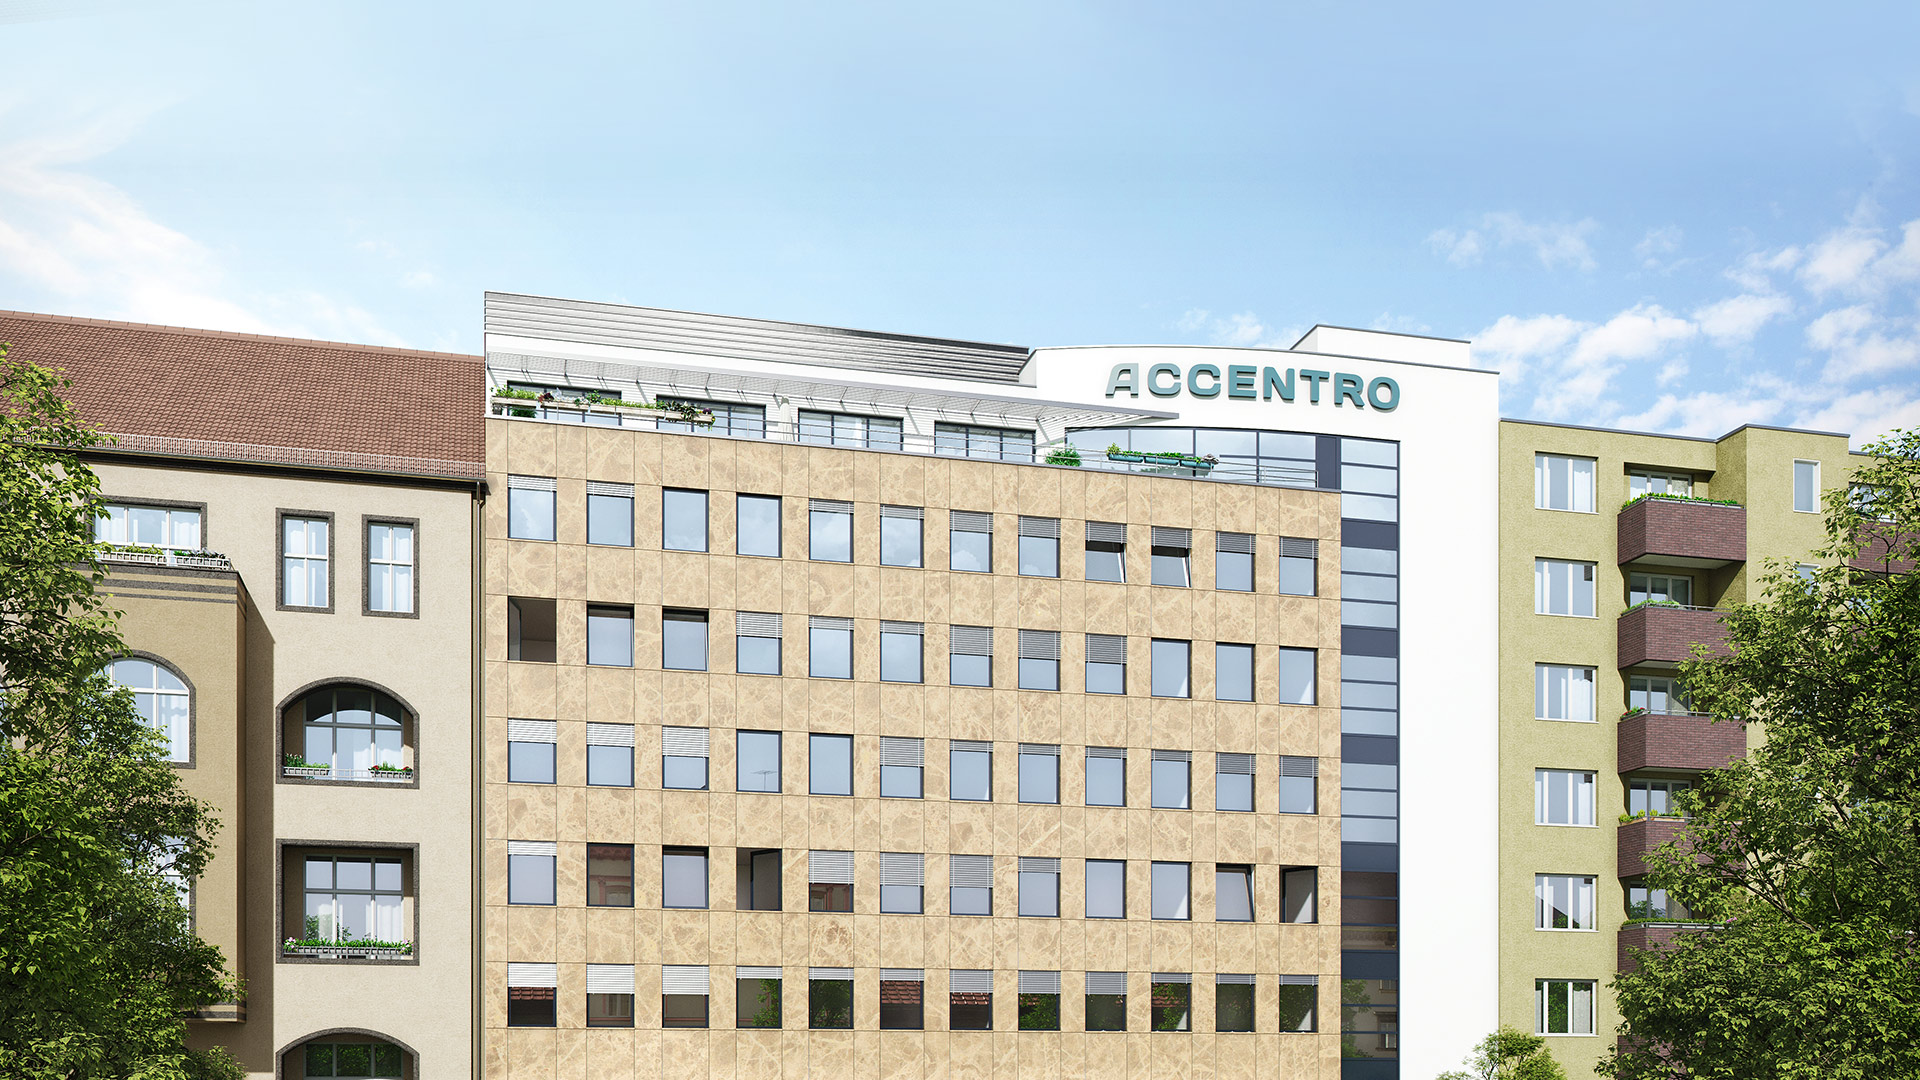 Accentro Real Estate AG